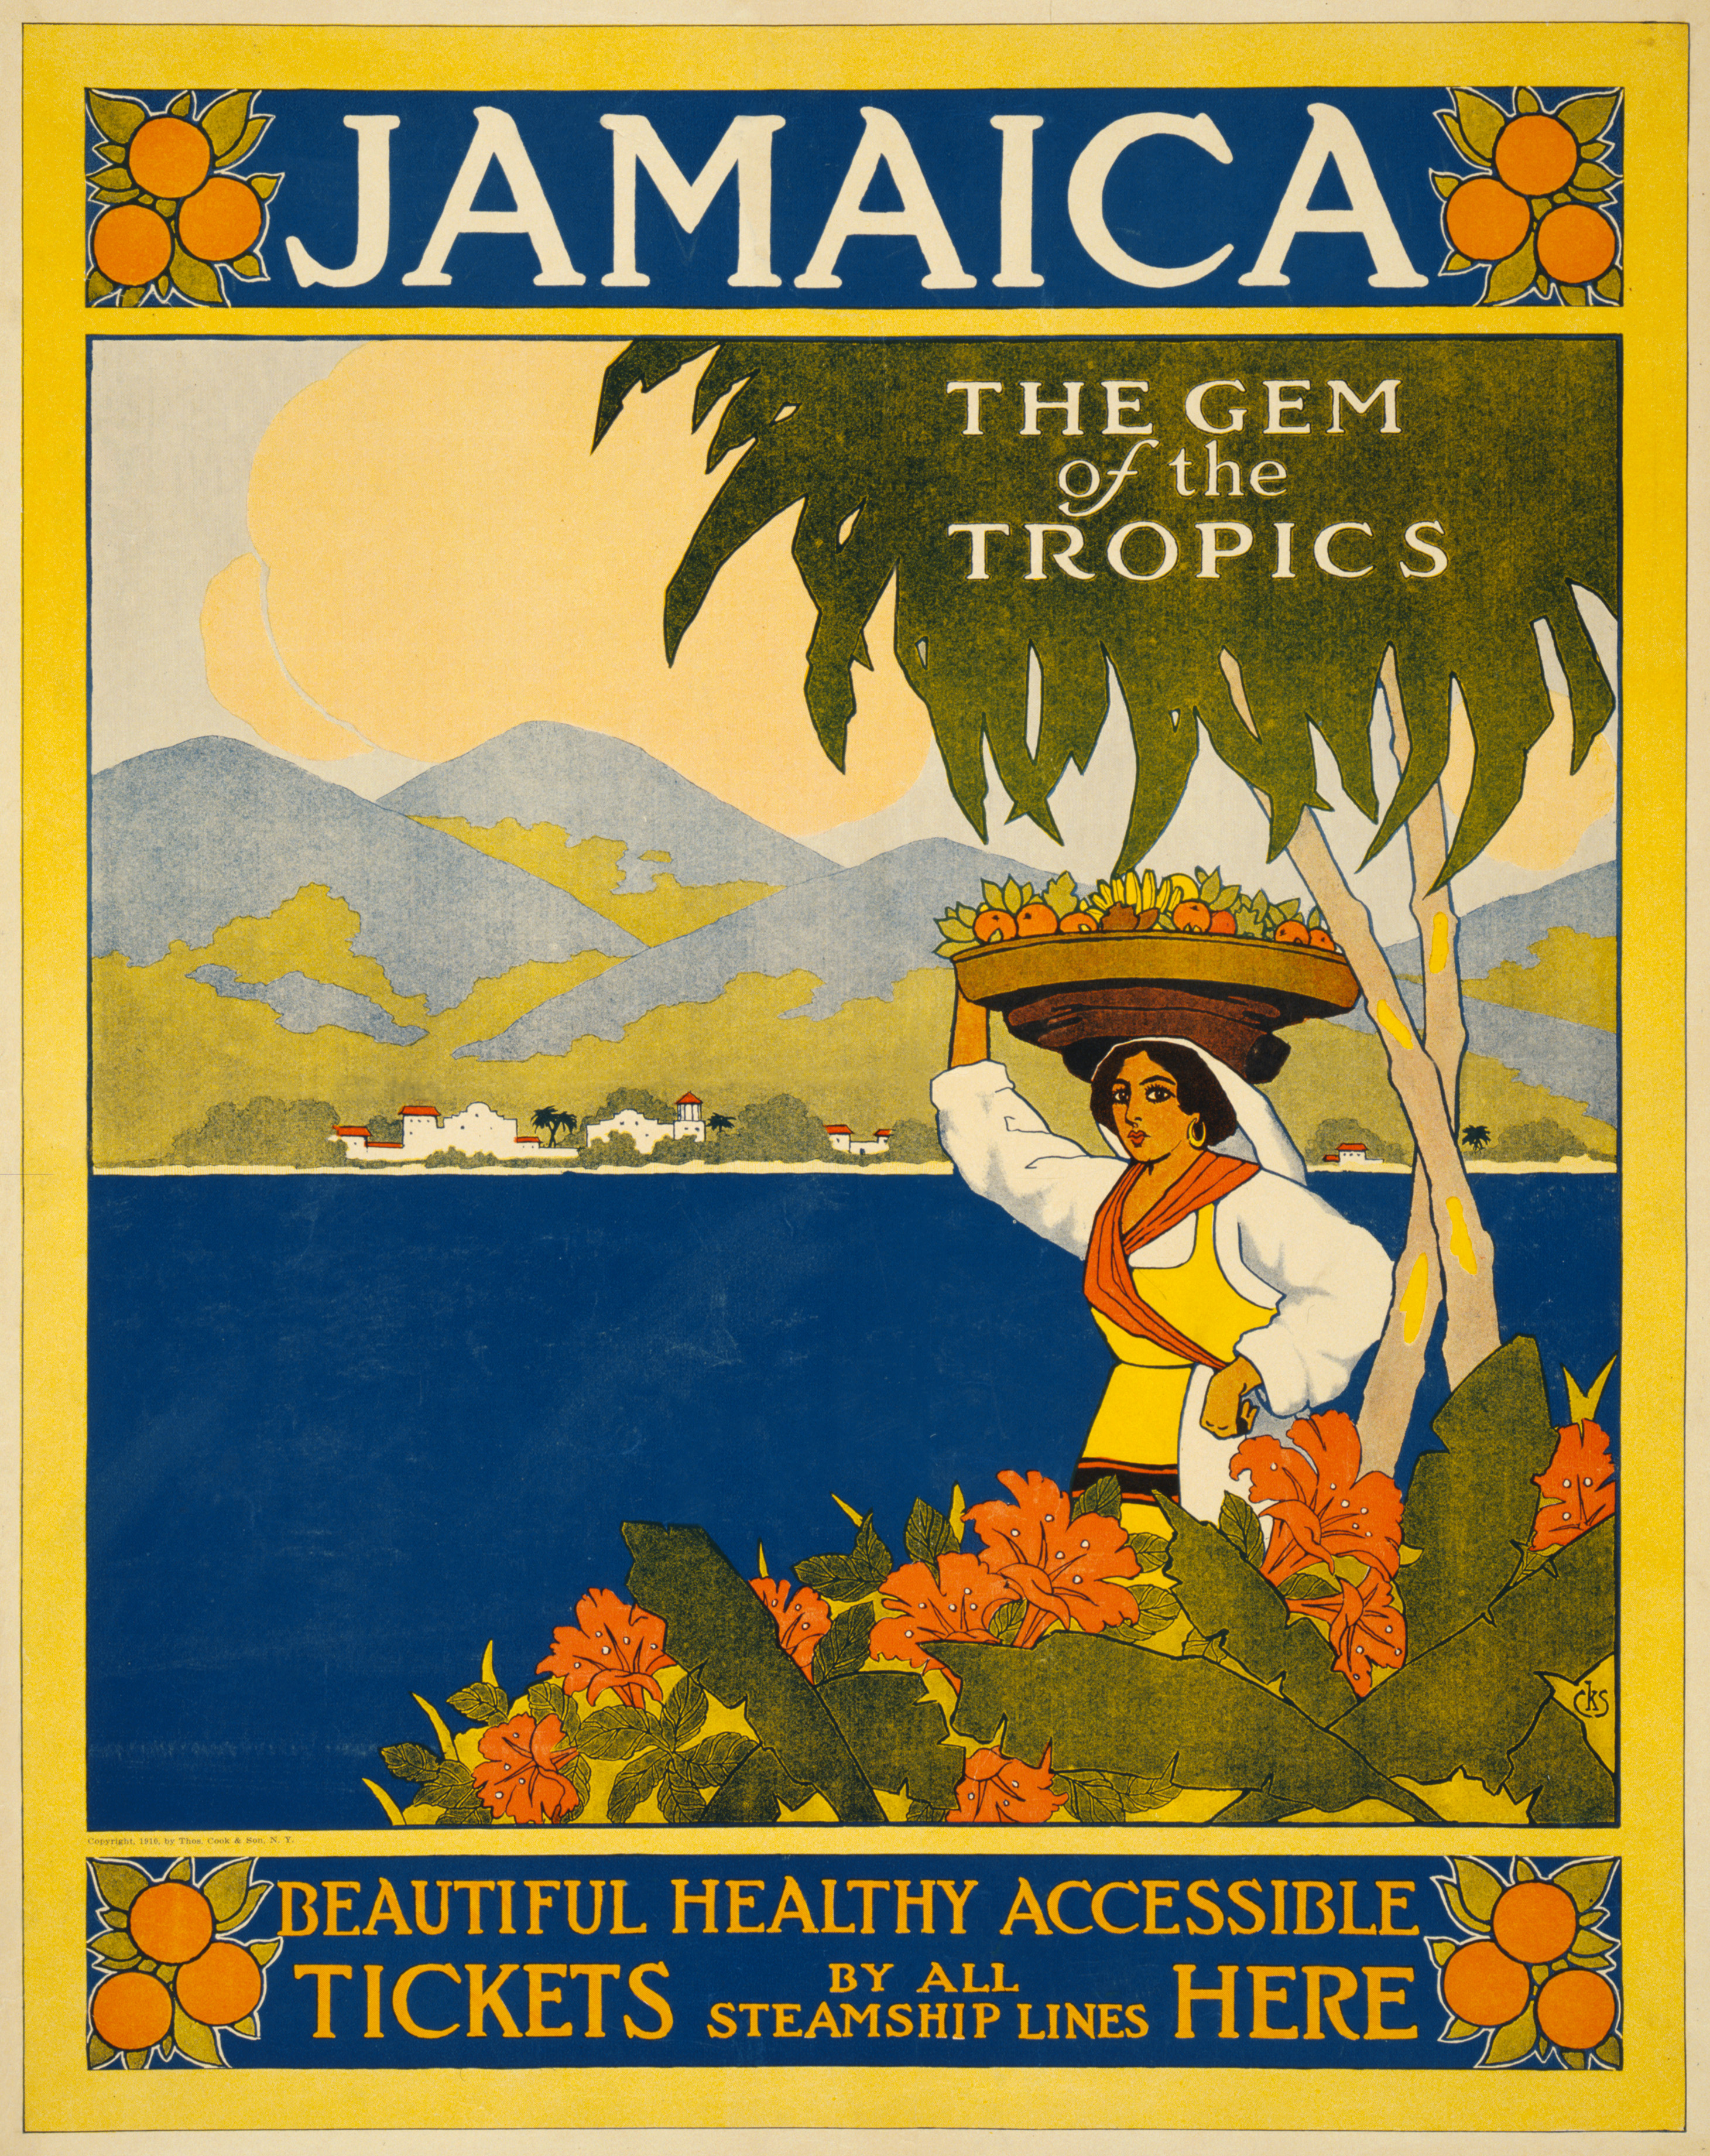 Original Travel Posters For Sale